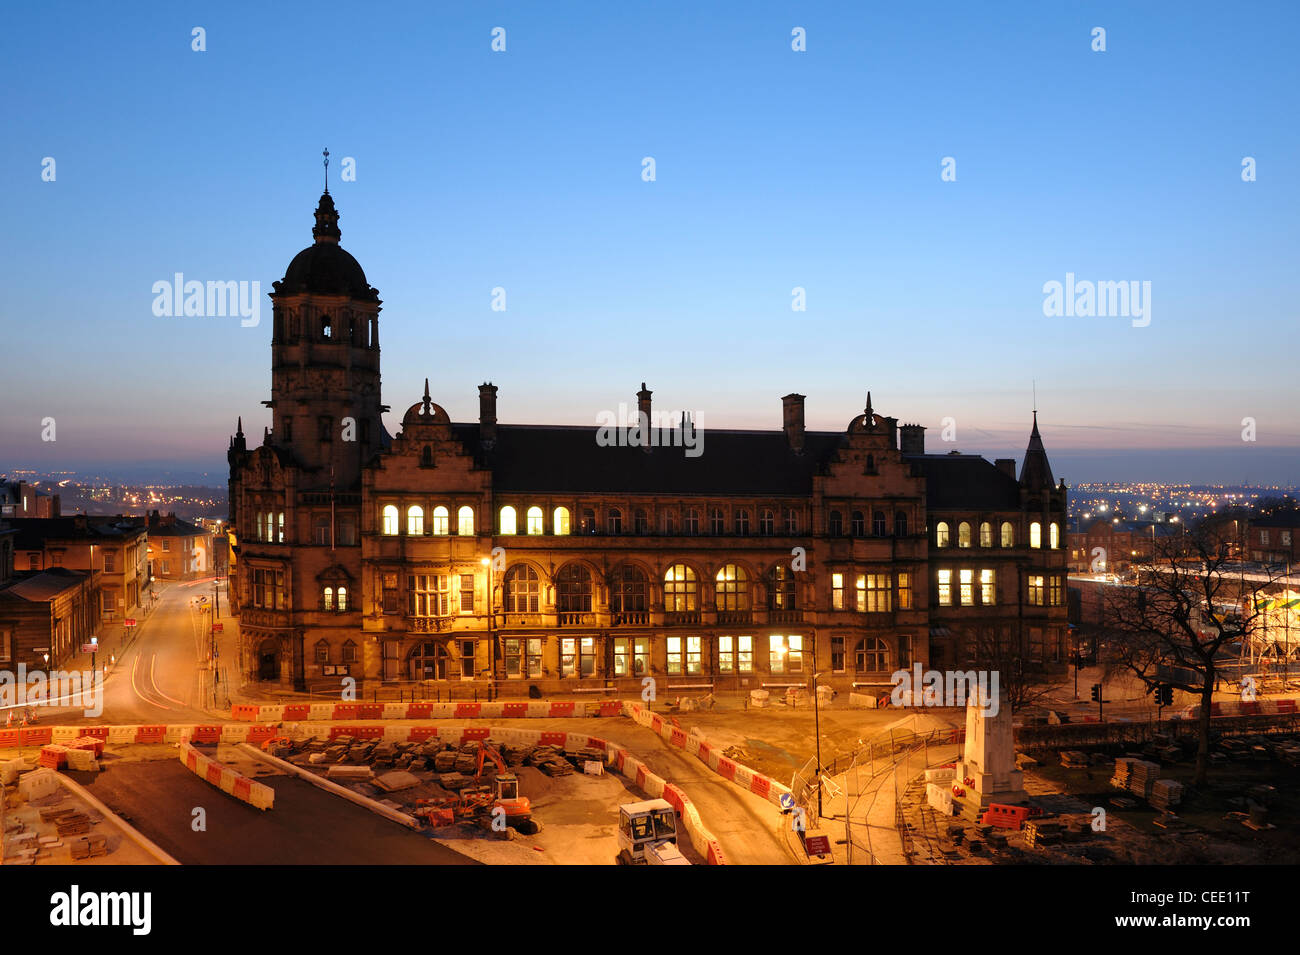 Wakefield County Hall - Stock Image